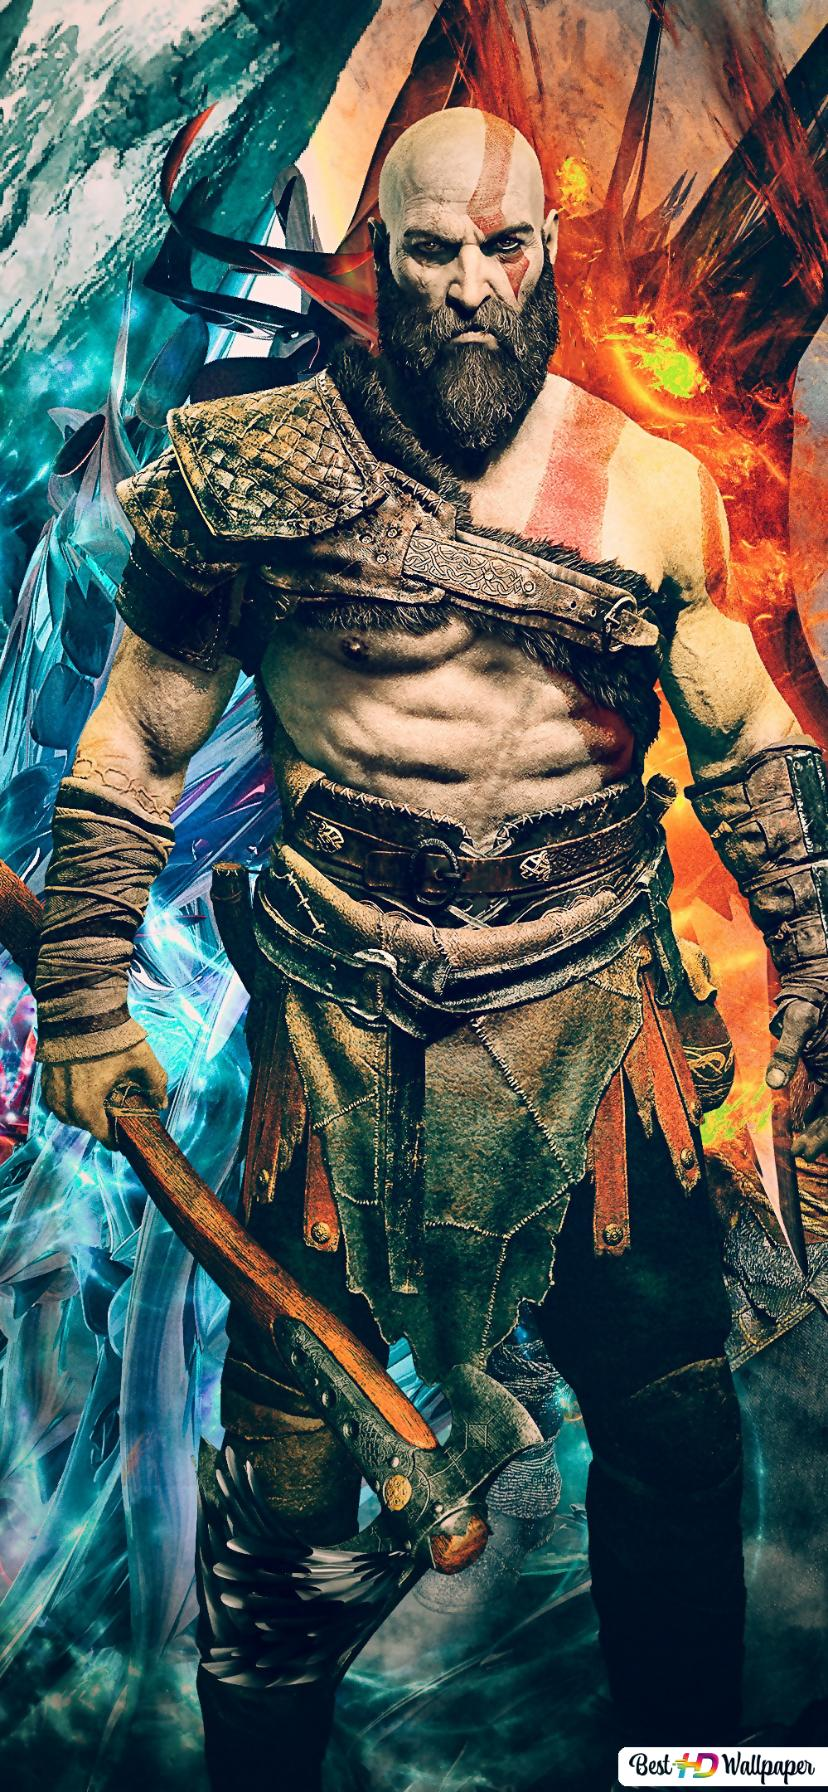 God Of War 4 Video Game Kratos And Atreus Hd Wallpaper Download